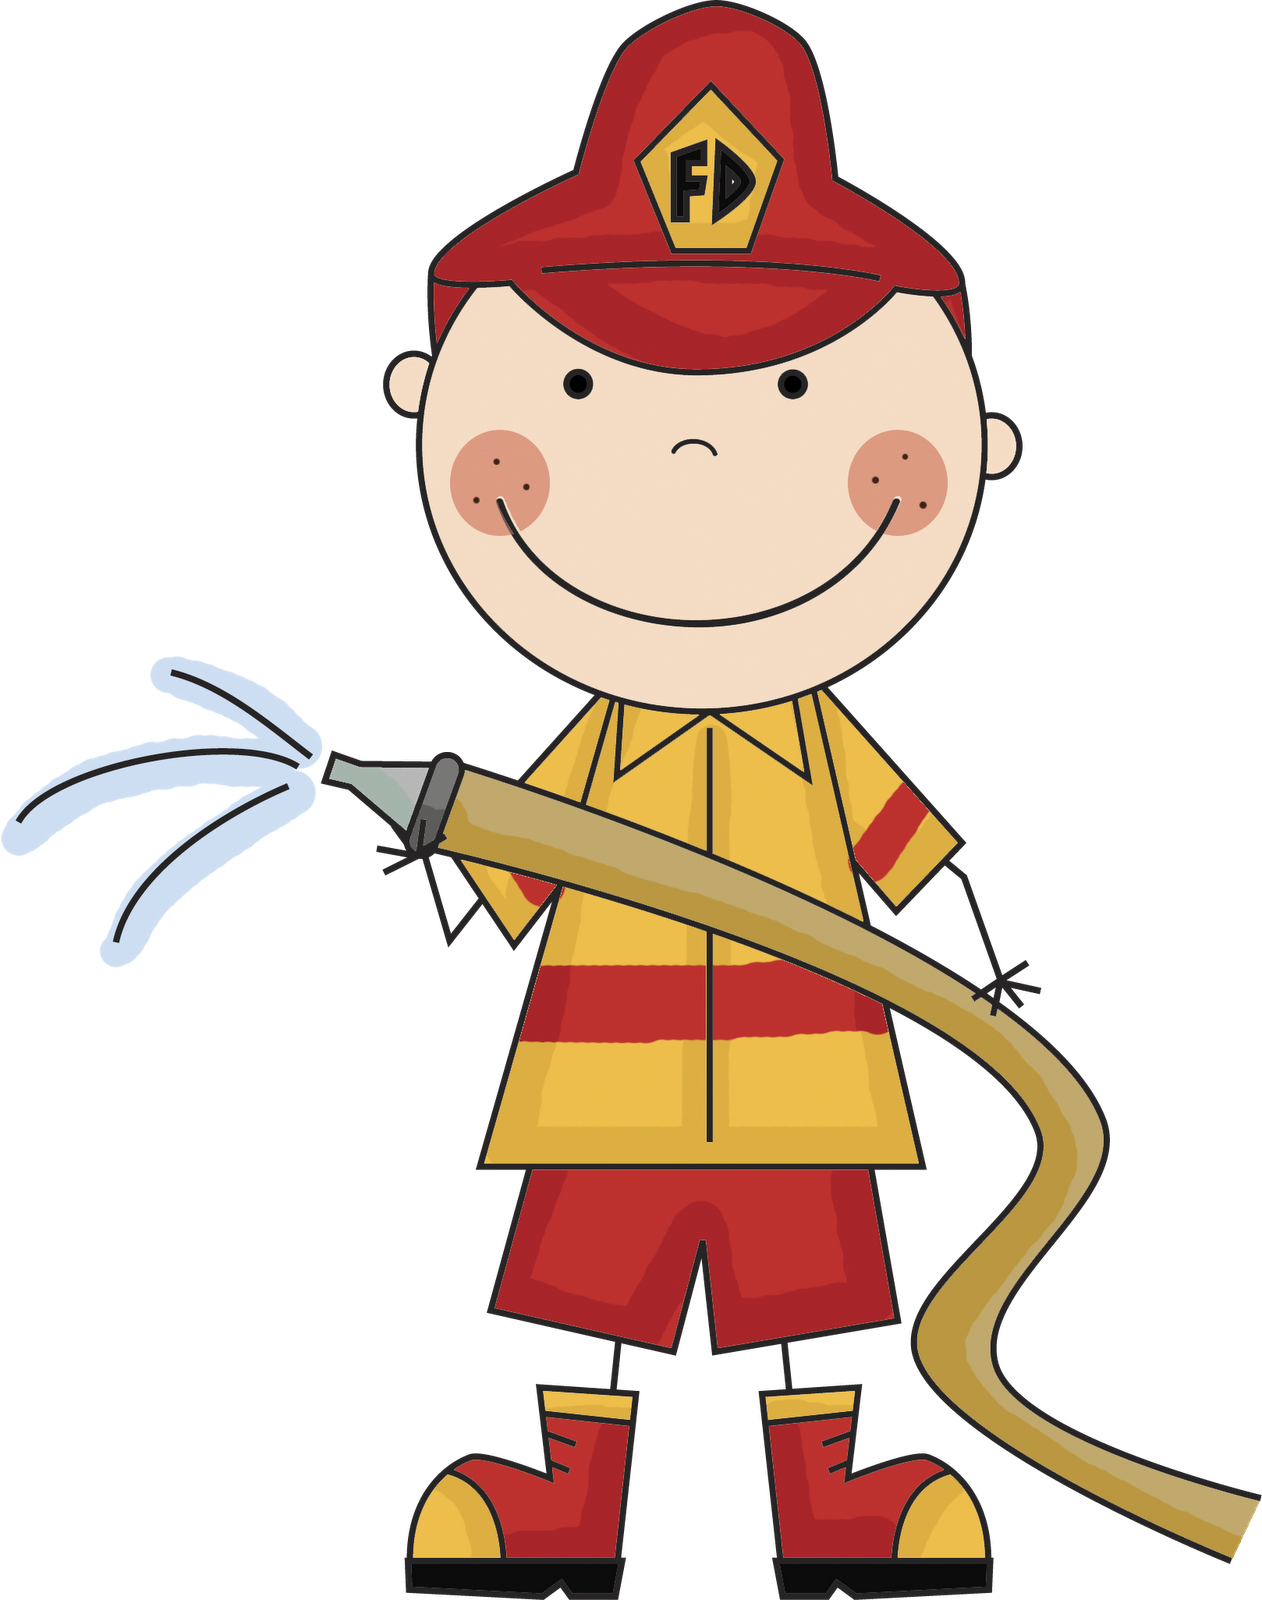 This is free fireman. Firefighter clipart fire drill